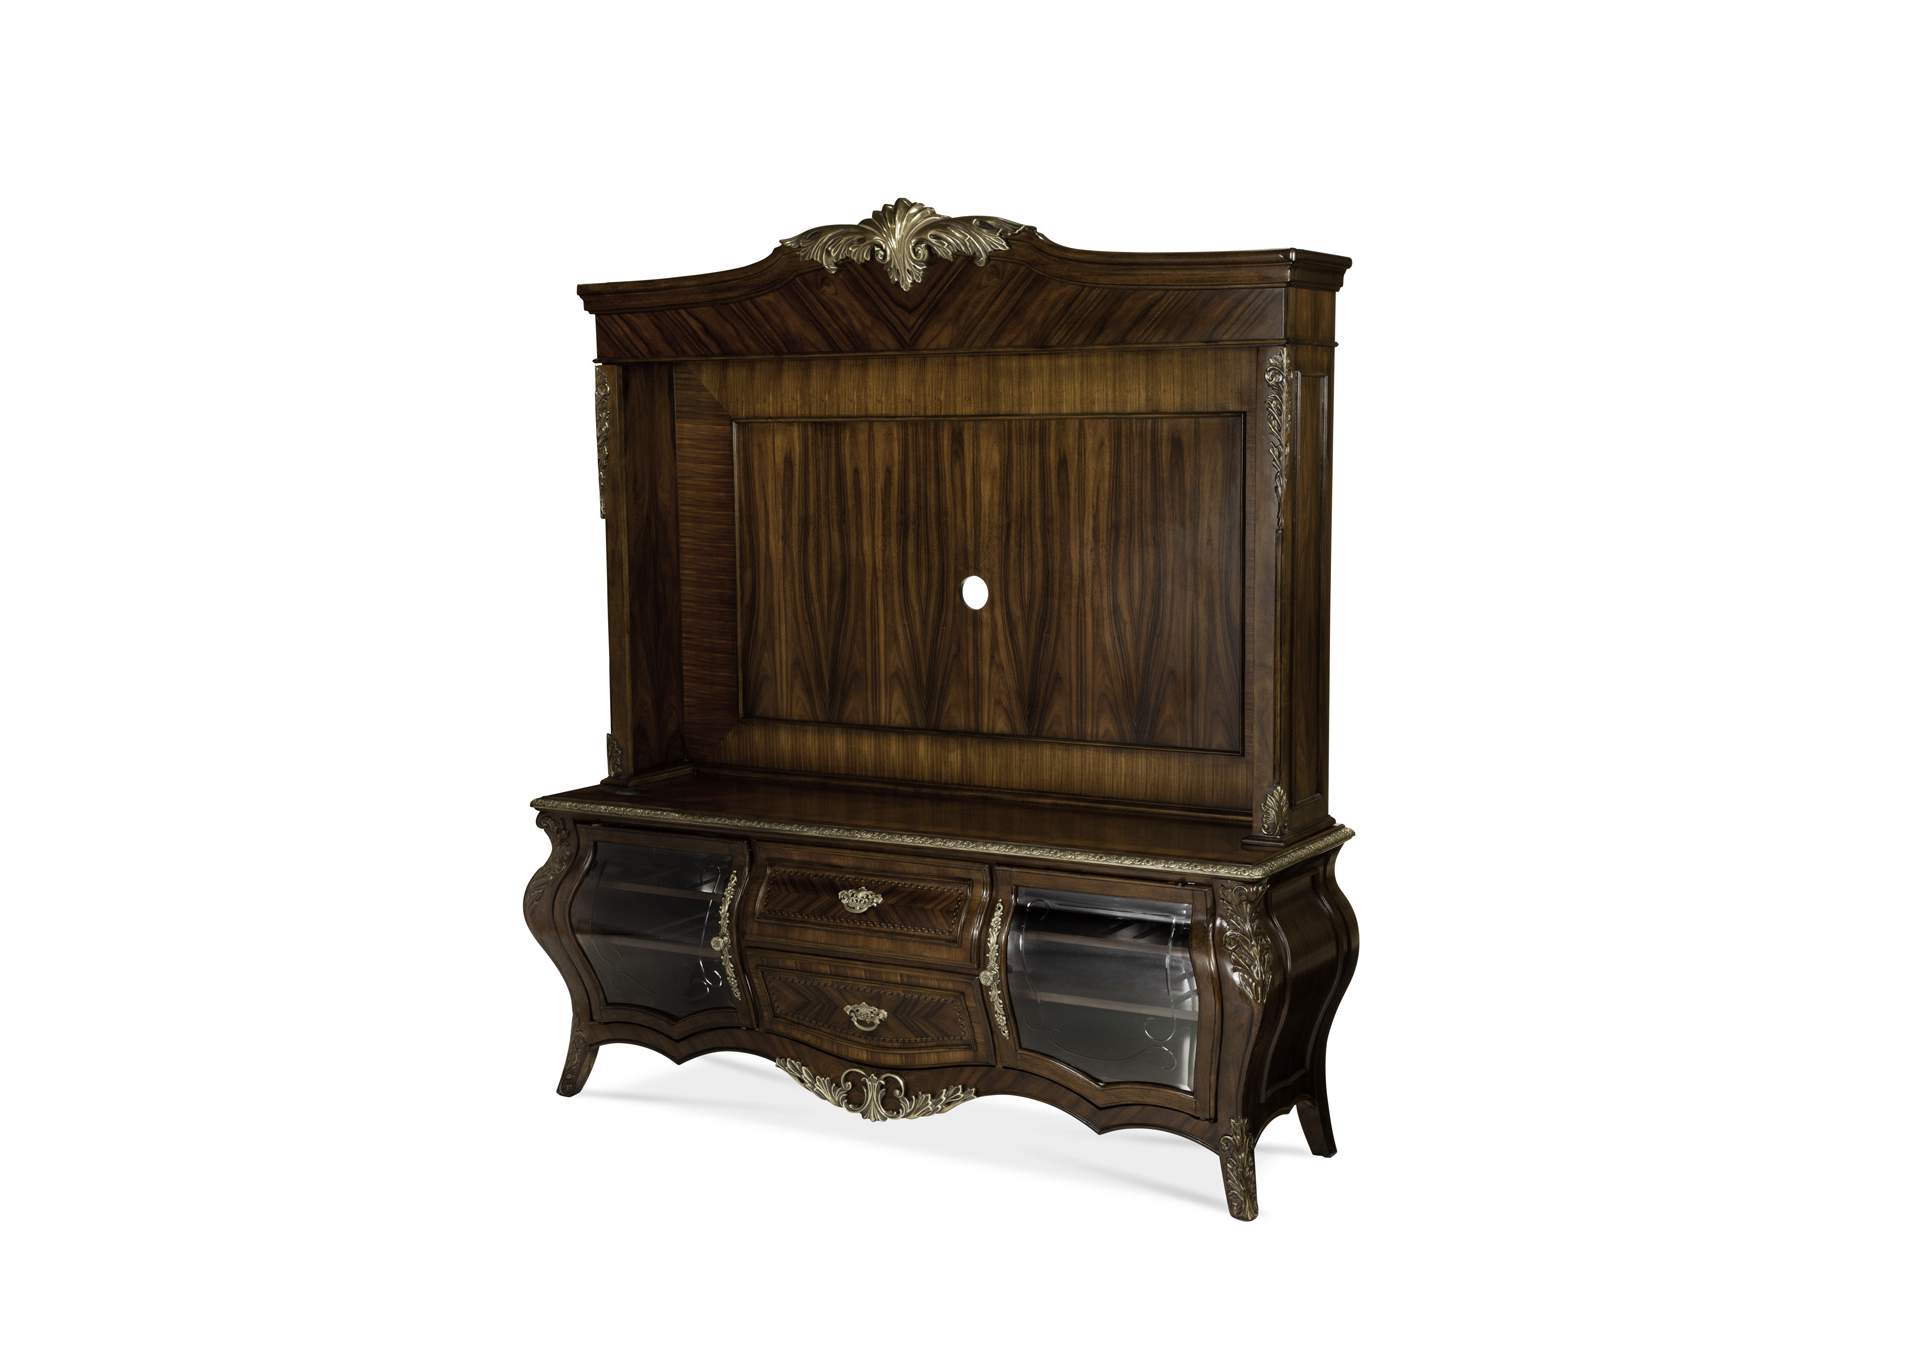 Imperial Court Radiant Chestnut Entertainment Unit,AICO